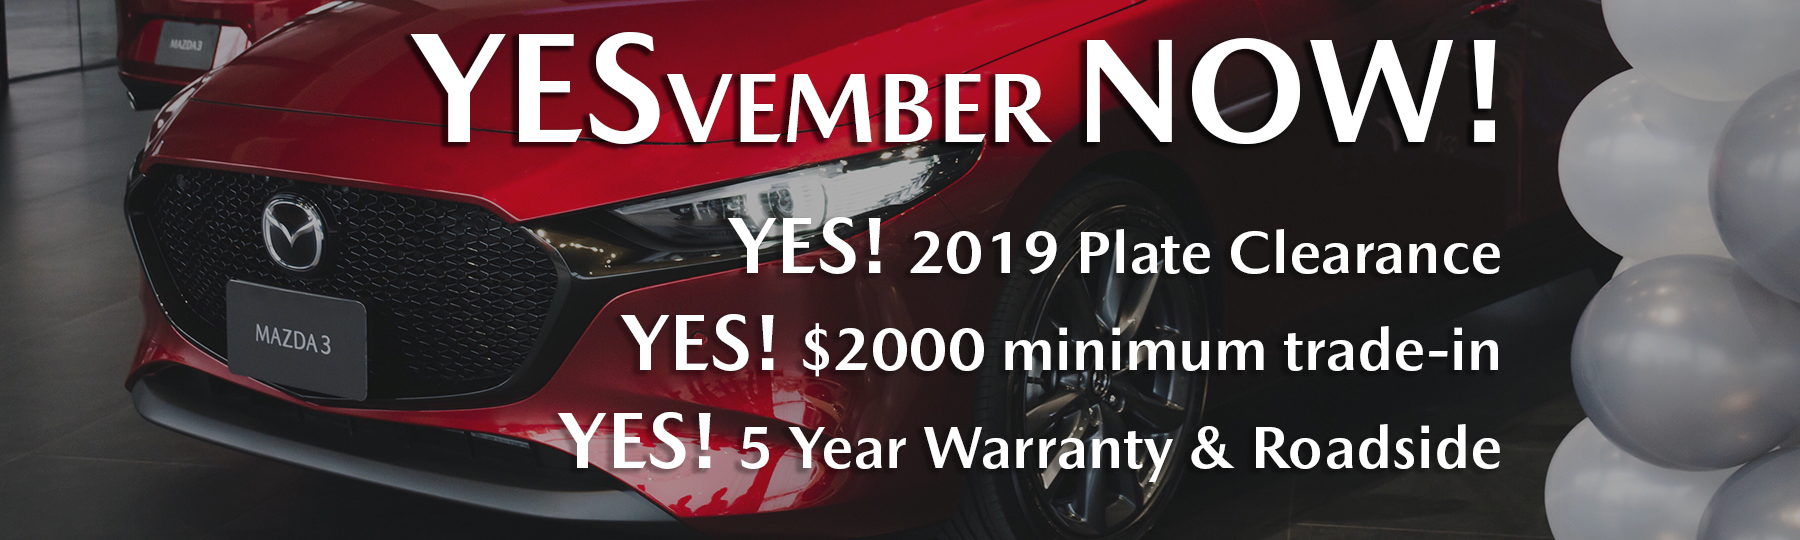 2019 Plate Clearance on NOW